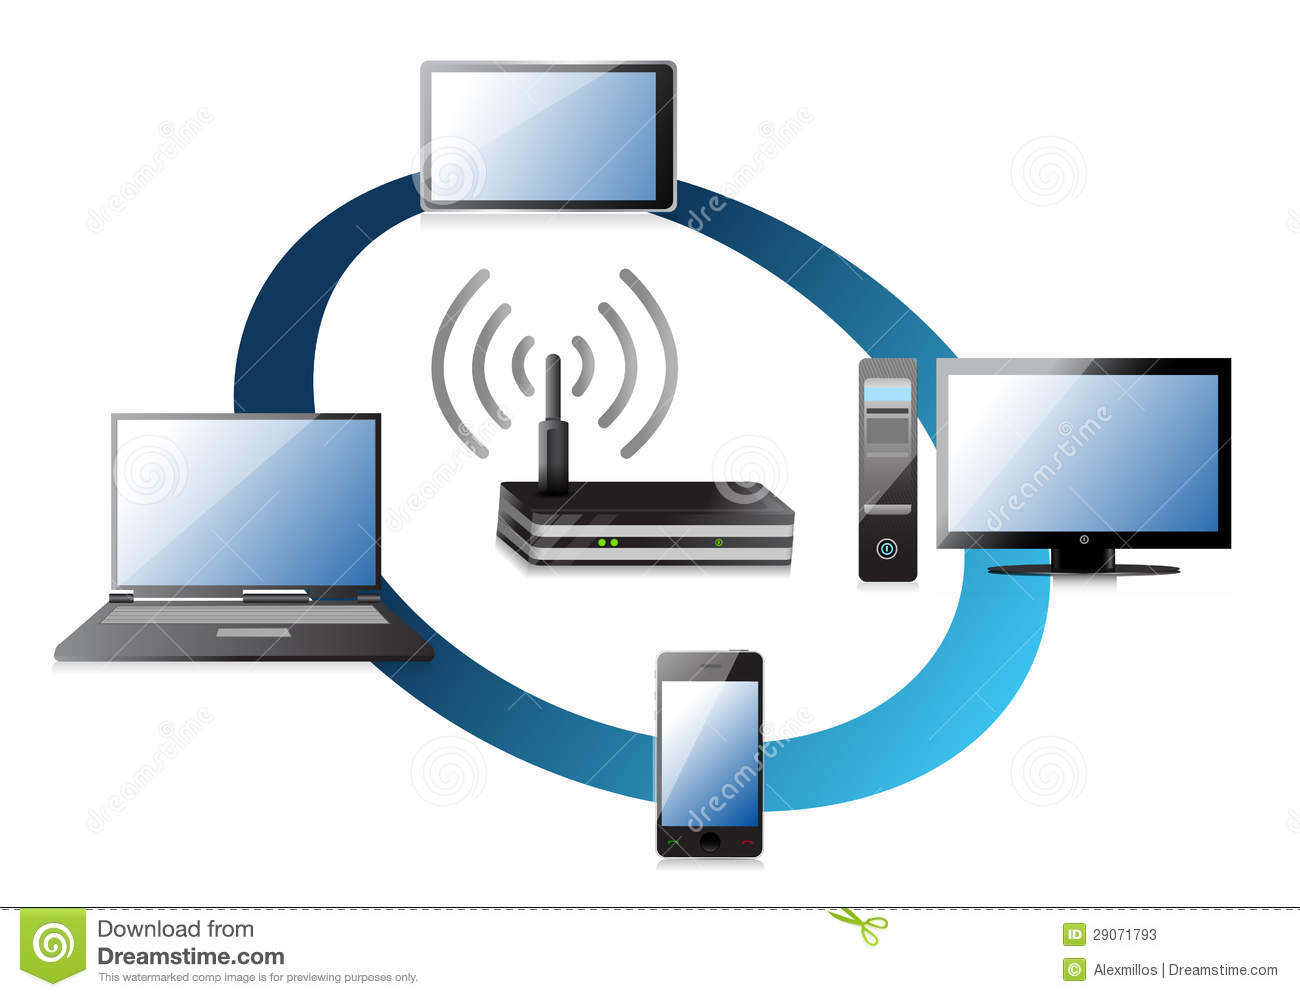 Home wifi network concept stock illustration. Image of ...